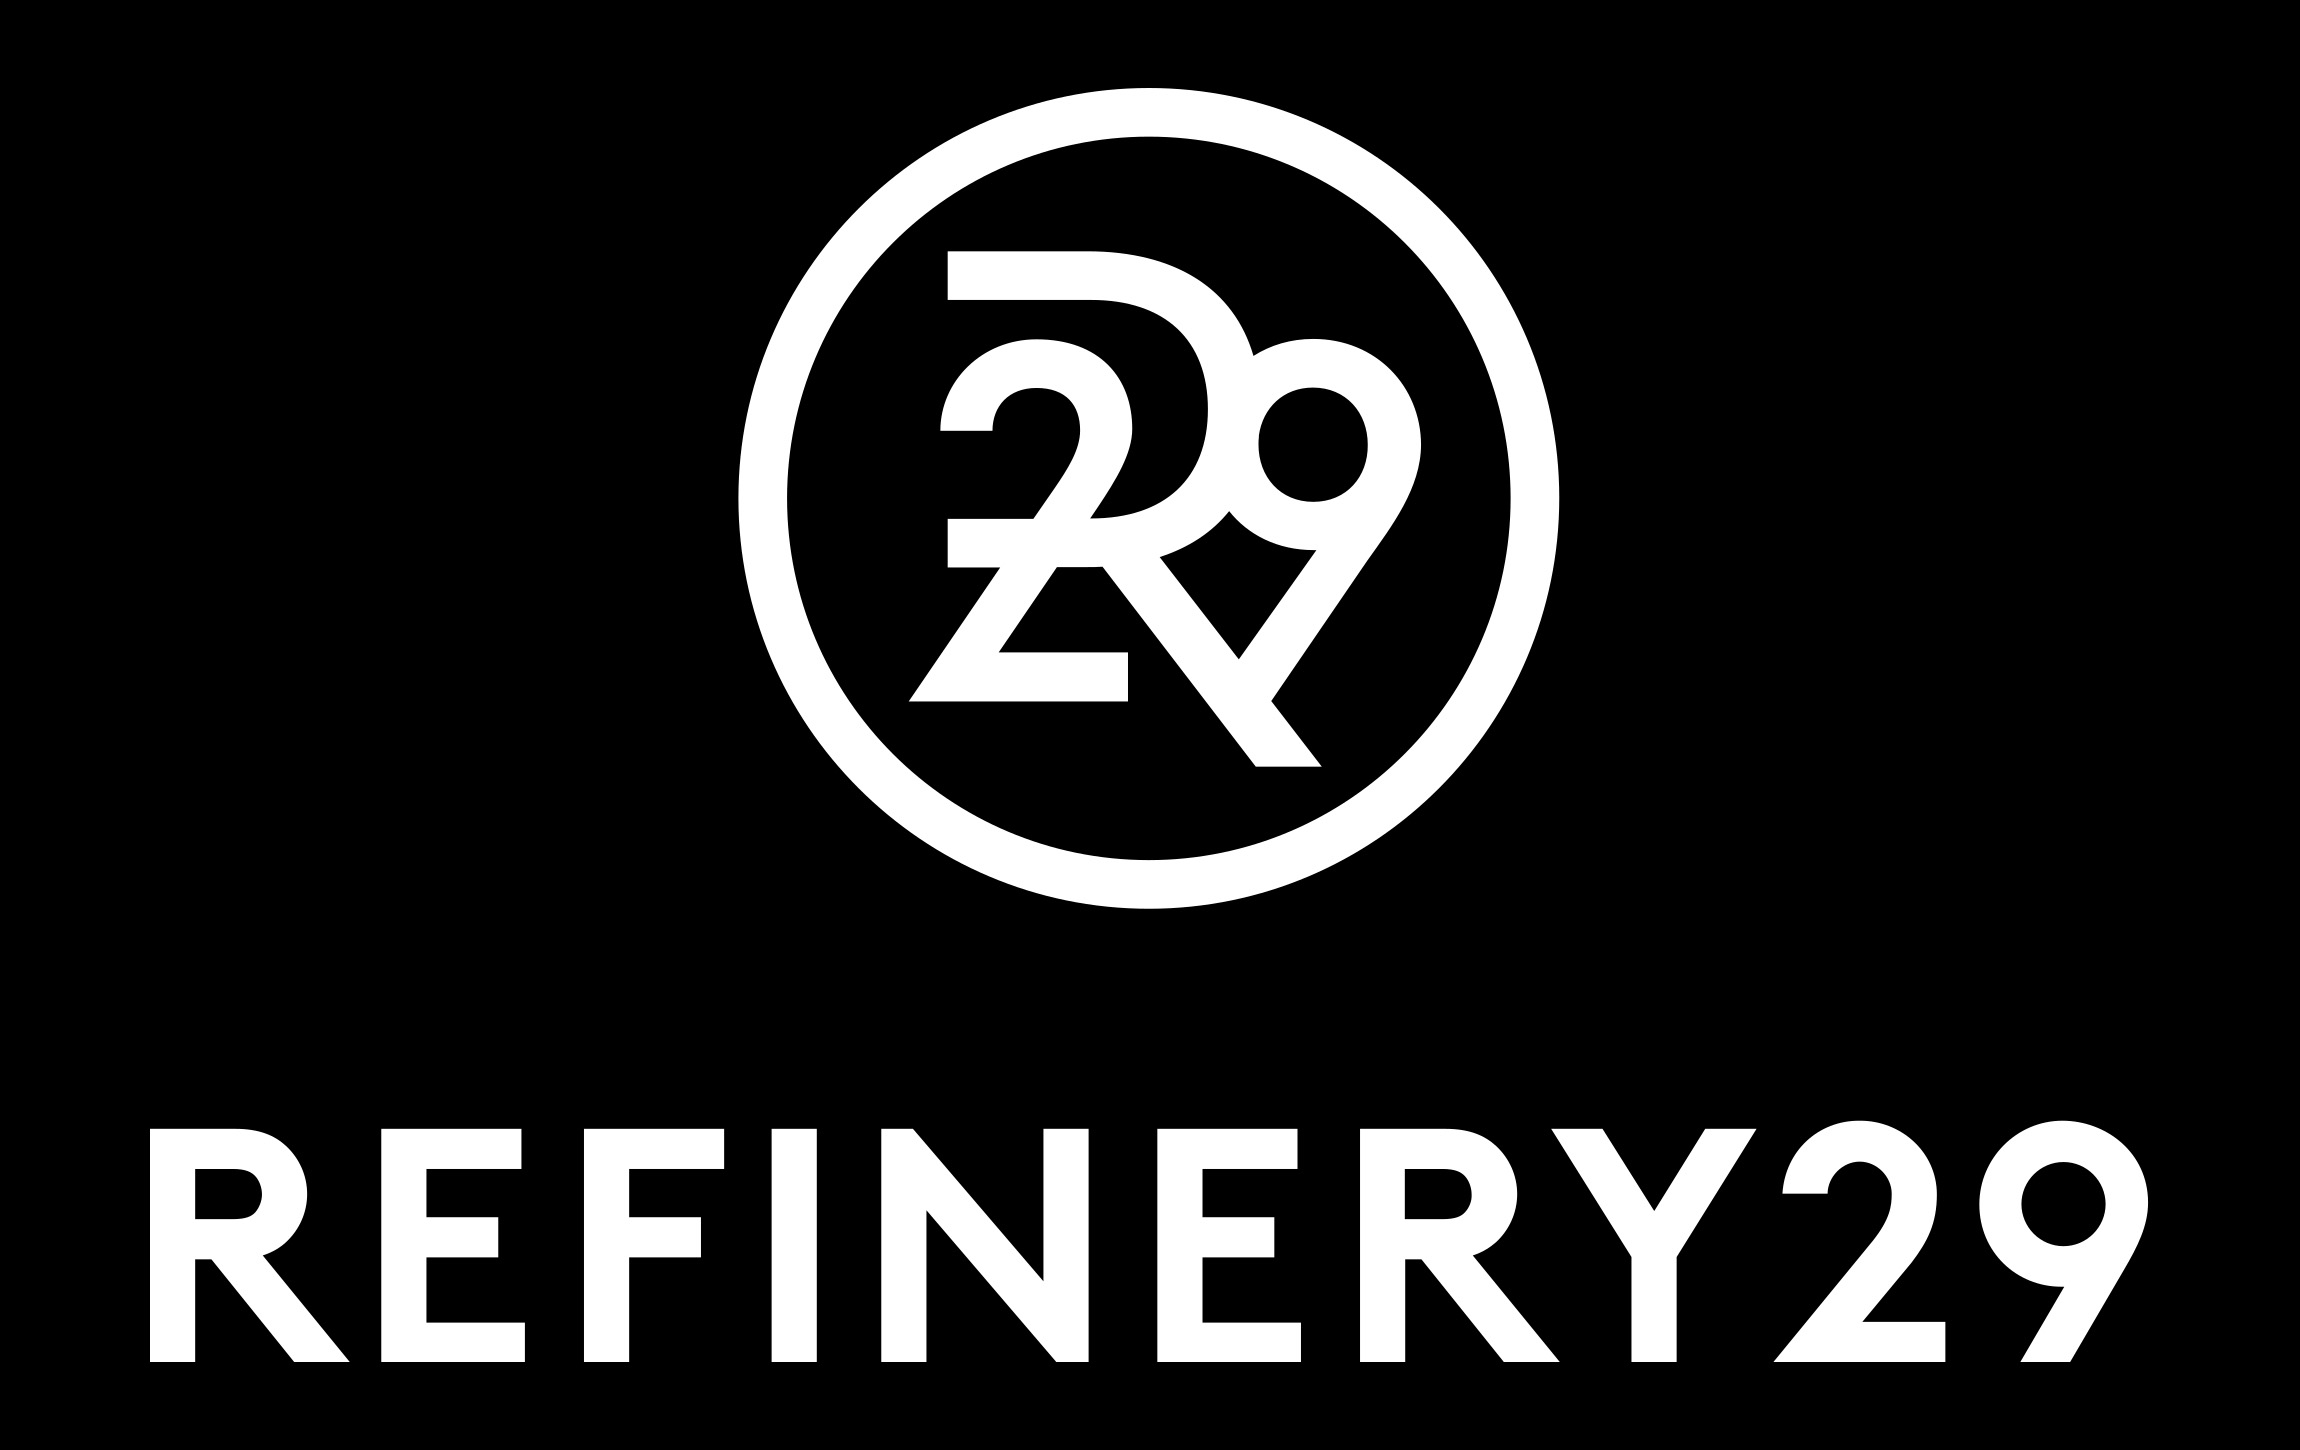 refinery29 logo  refinery29 symbol  meaning  history and evolution